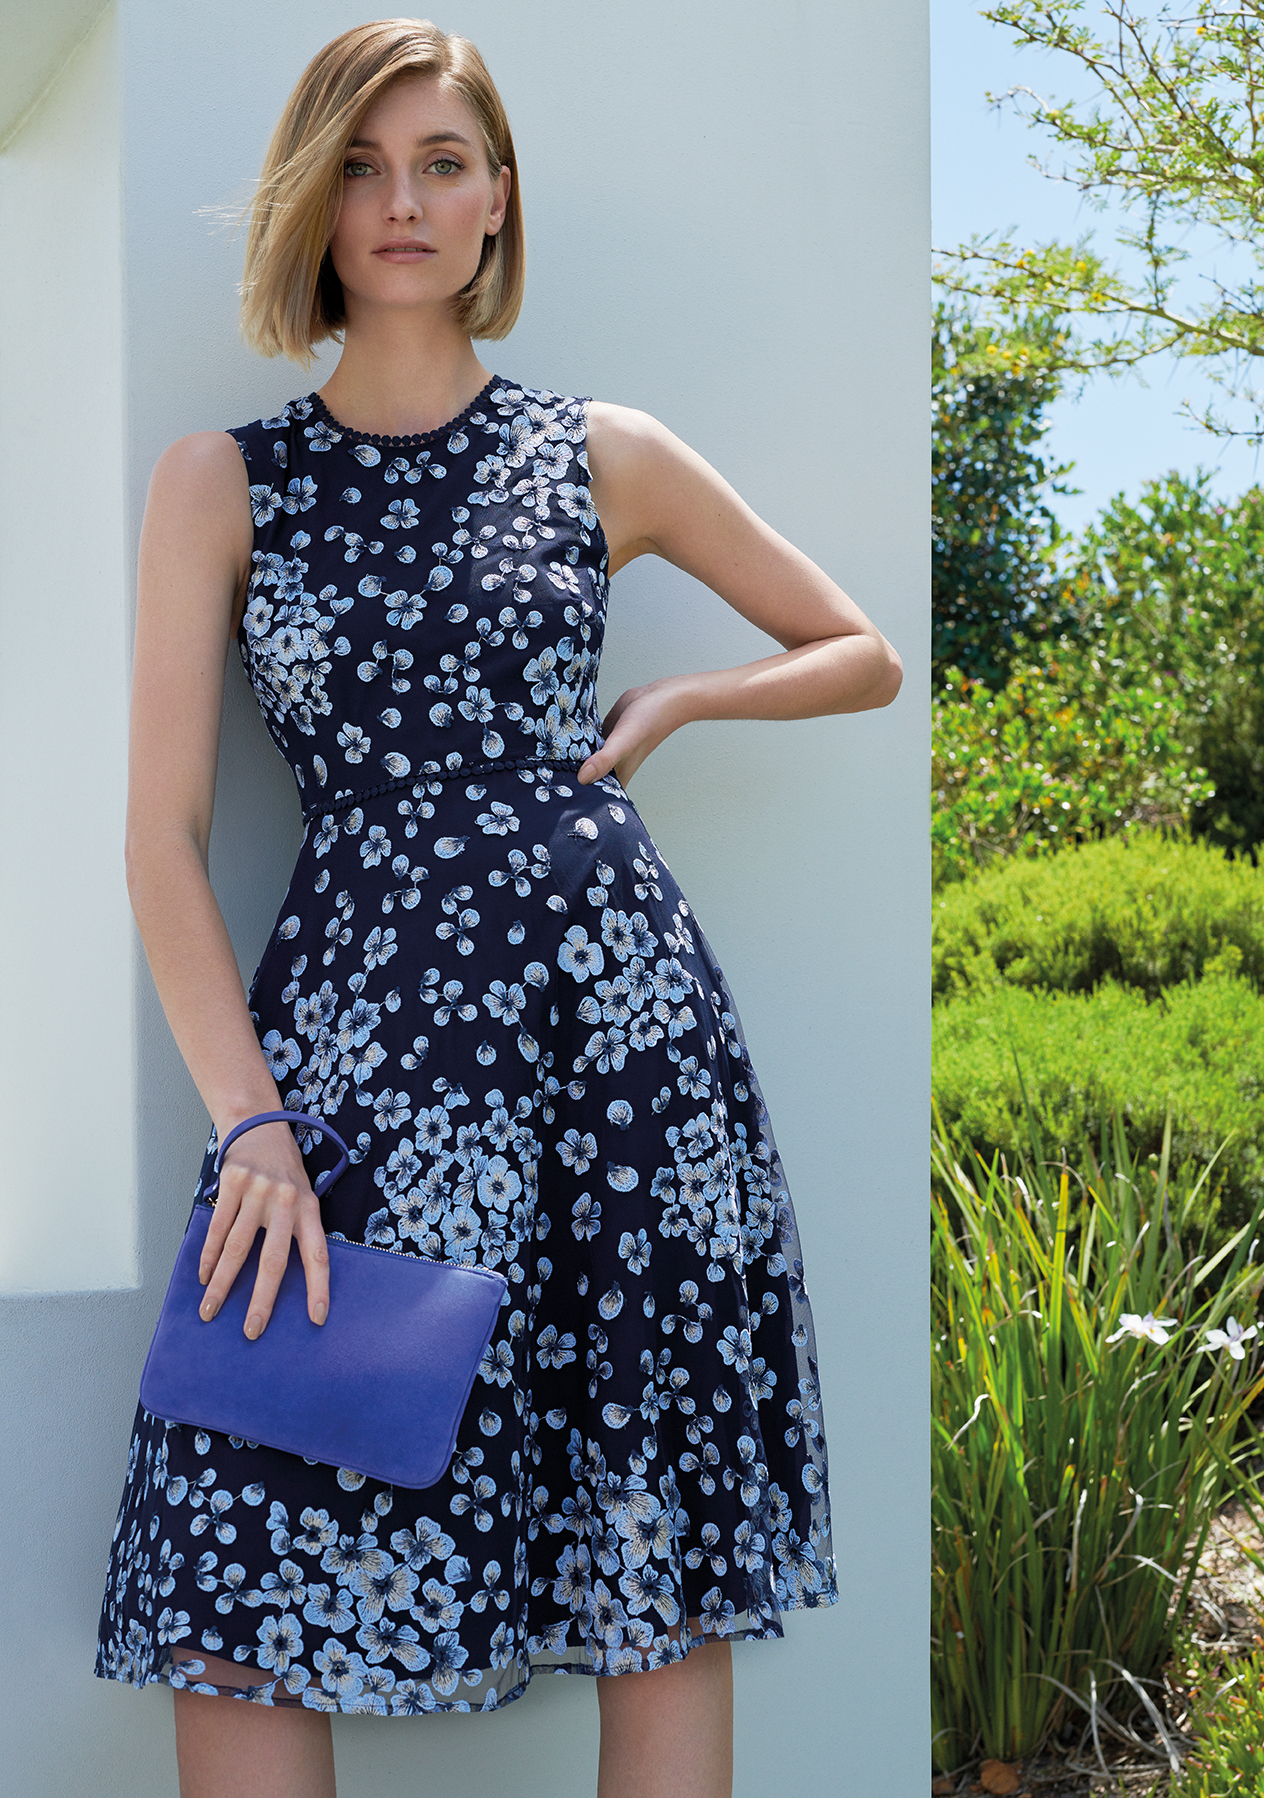 Floral occasion dress in dark blue with matching clutch by Hobbs.